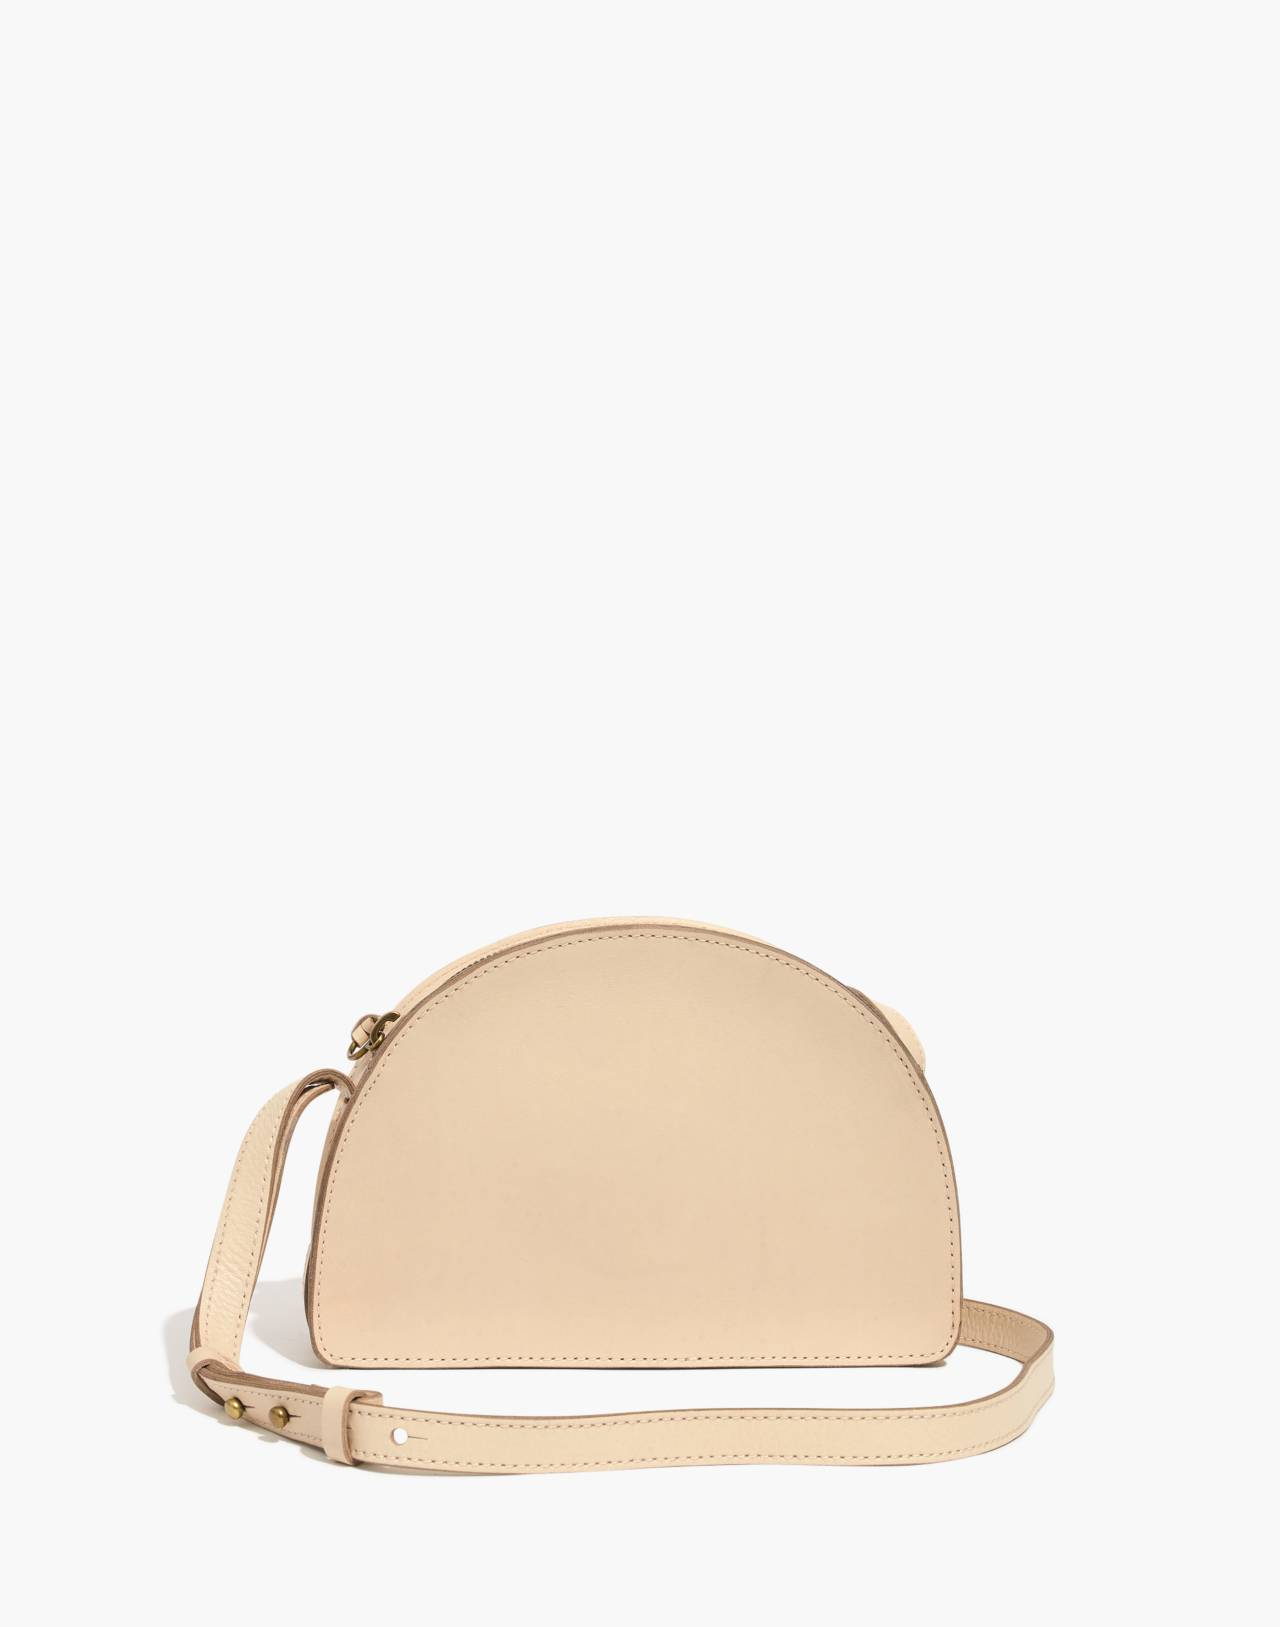 The Simple Half-Moon Crossbody Bag in faded wicker image 1